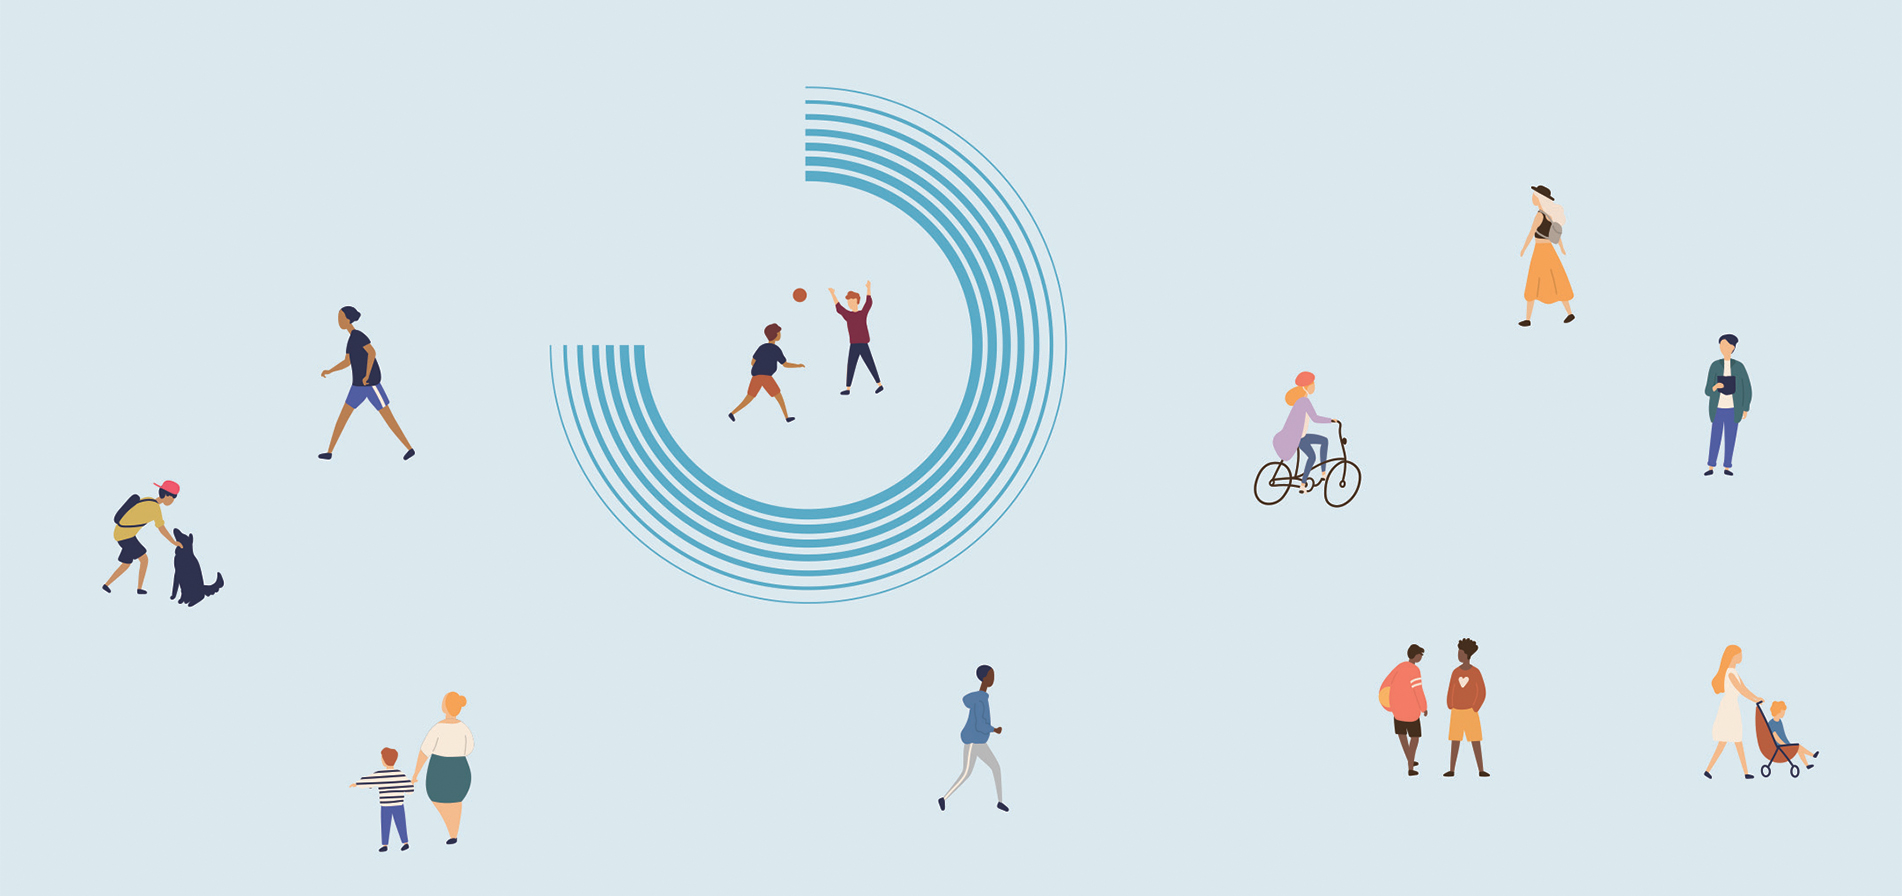 An illustration of people walking, playing with a ball, petting a dog, pushing a stroller and riding a bike on a blue background.